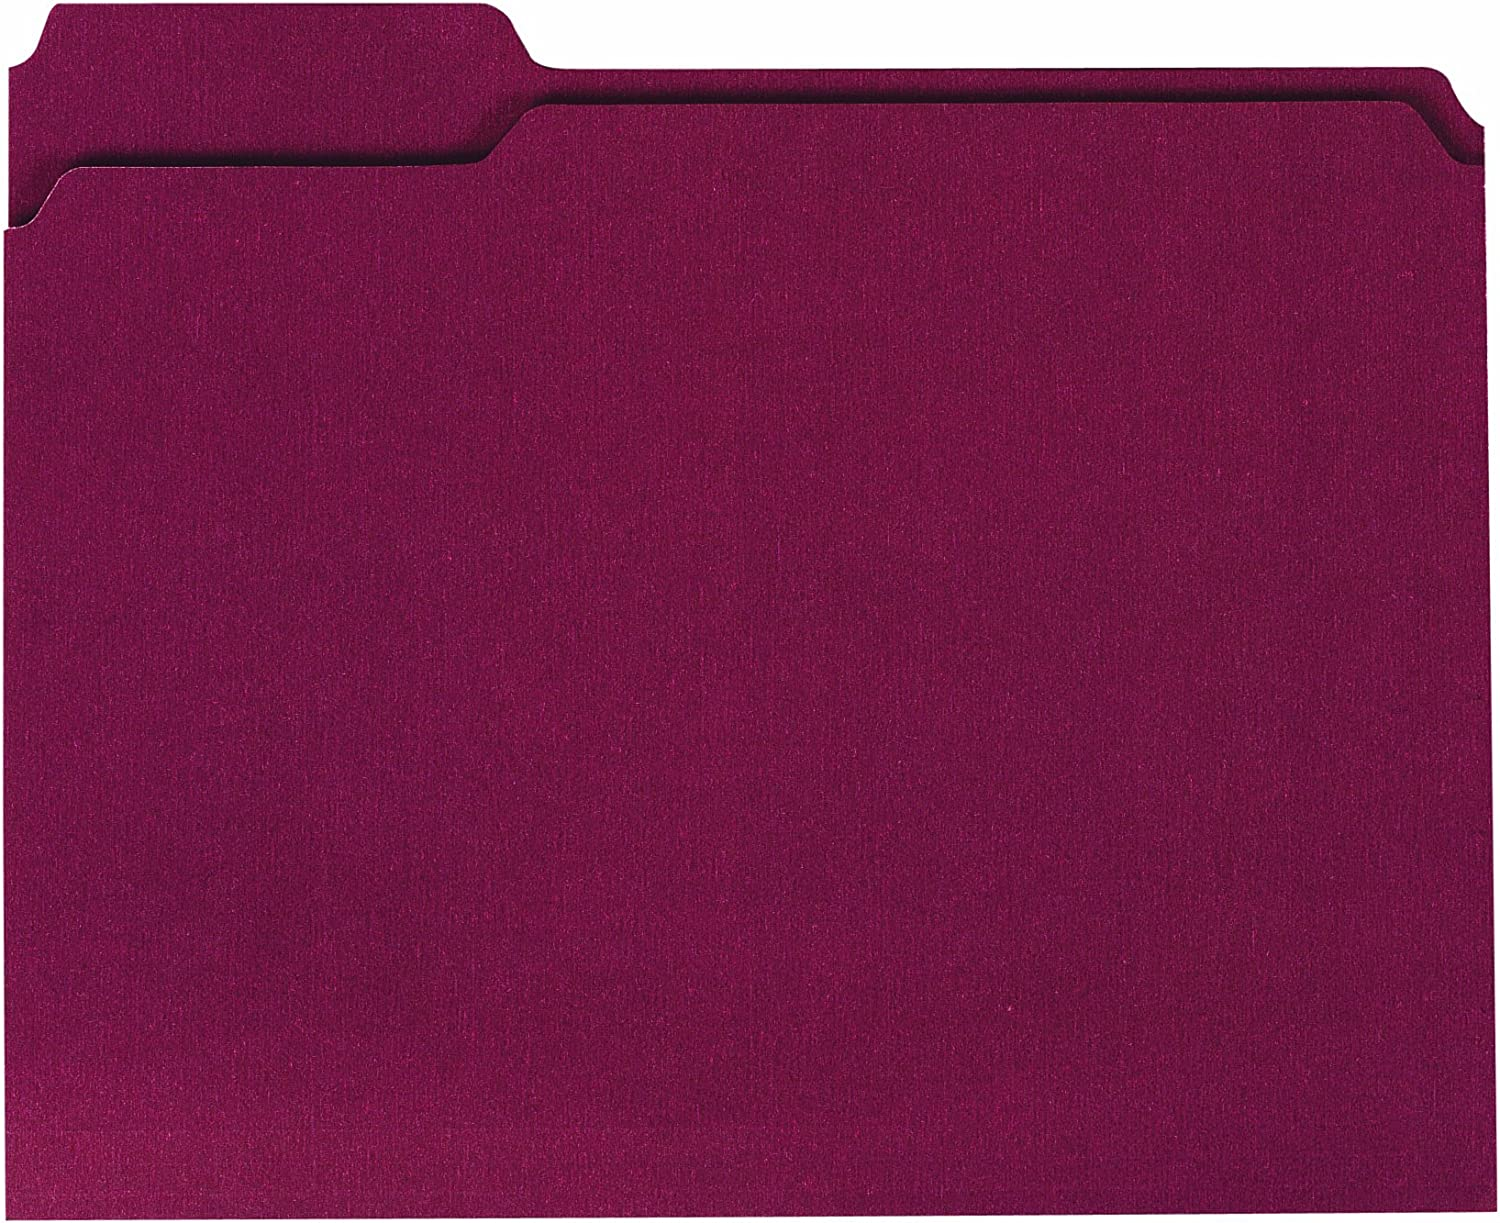 Globe-Weis online shopping Pendaflex Colored File Folders T Limited price sale Cut Reinforced 3 1